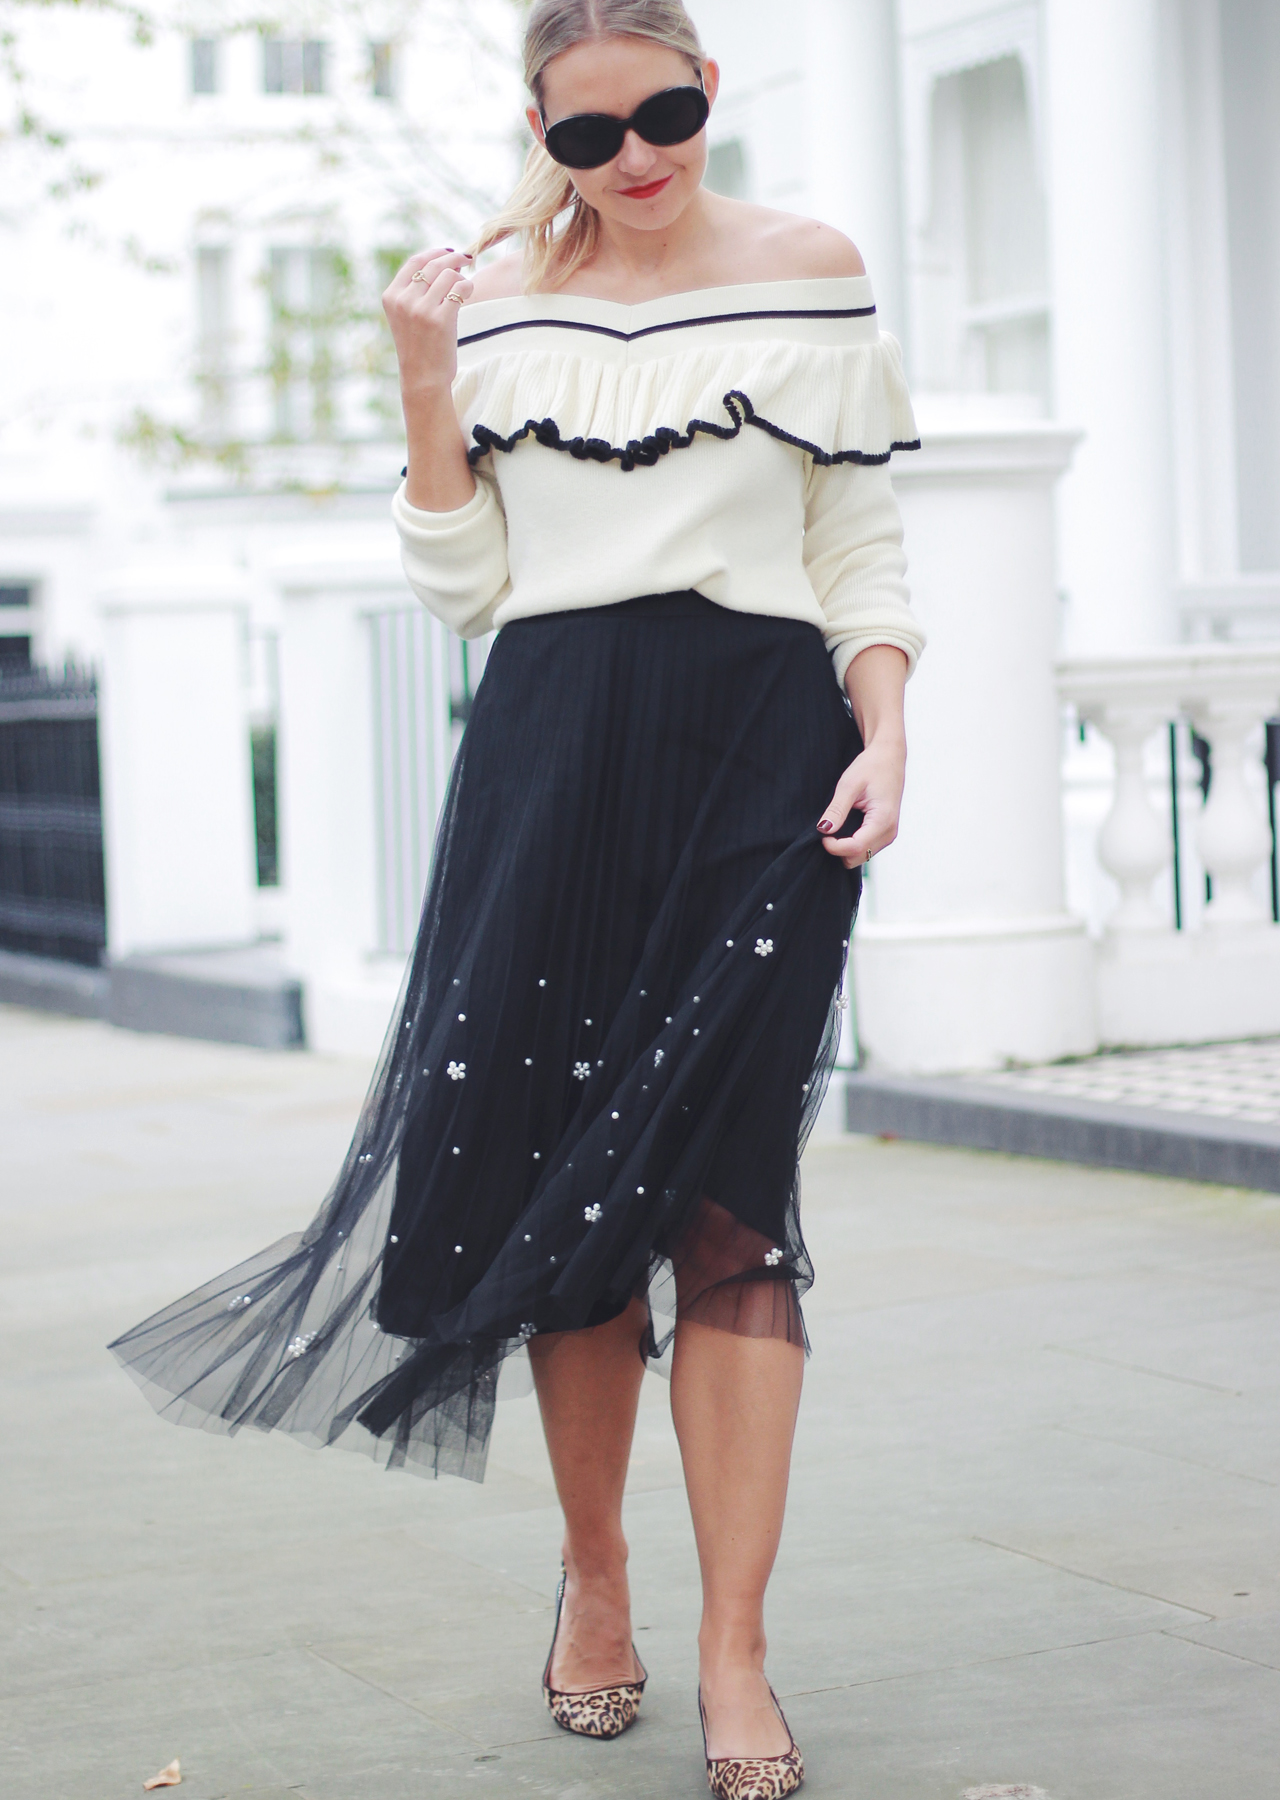 de5a305644 ... The Steele Maiden: Black and White Holiday Style - Anthropologie Pearl  Tulle Skirt and Off ...